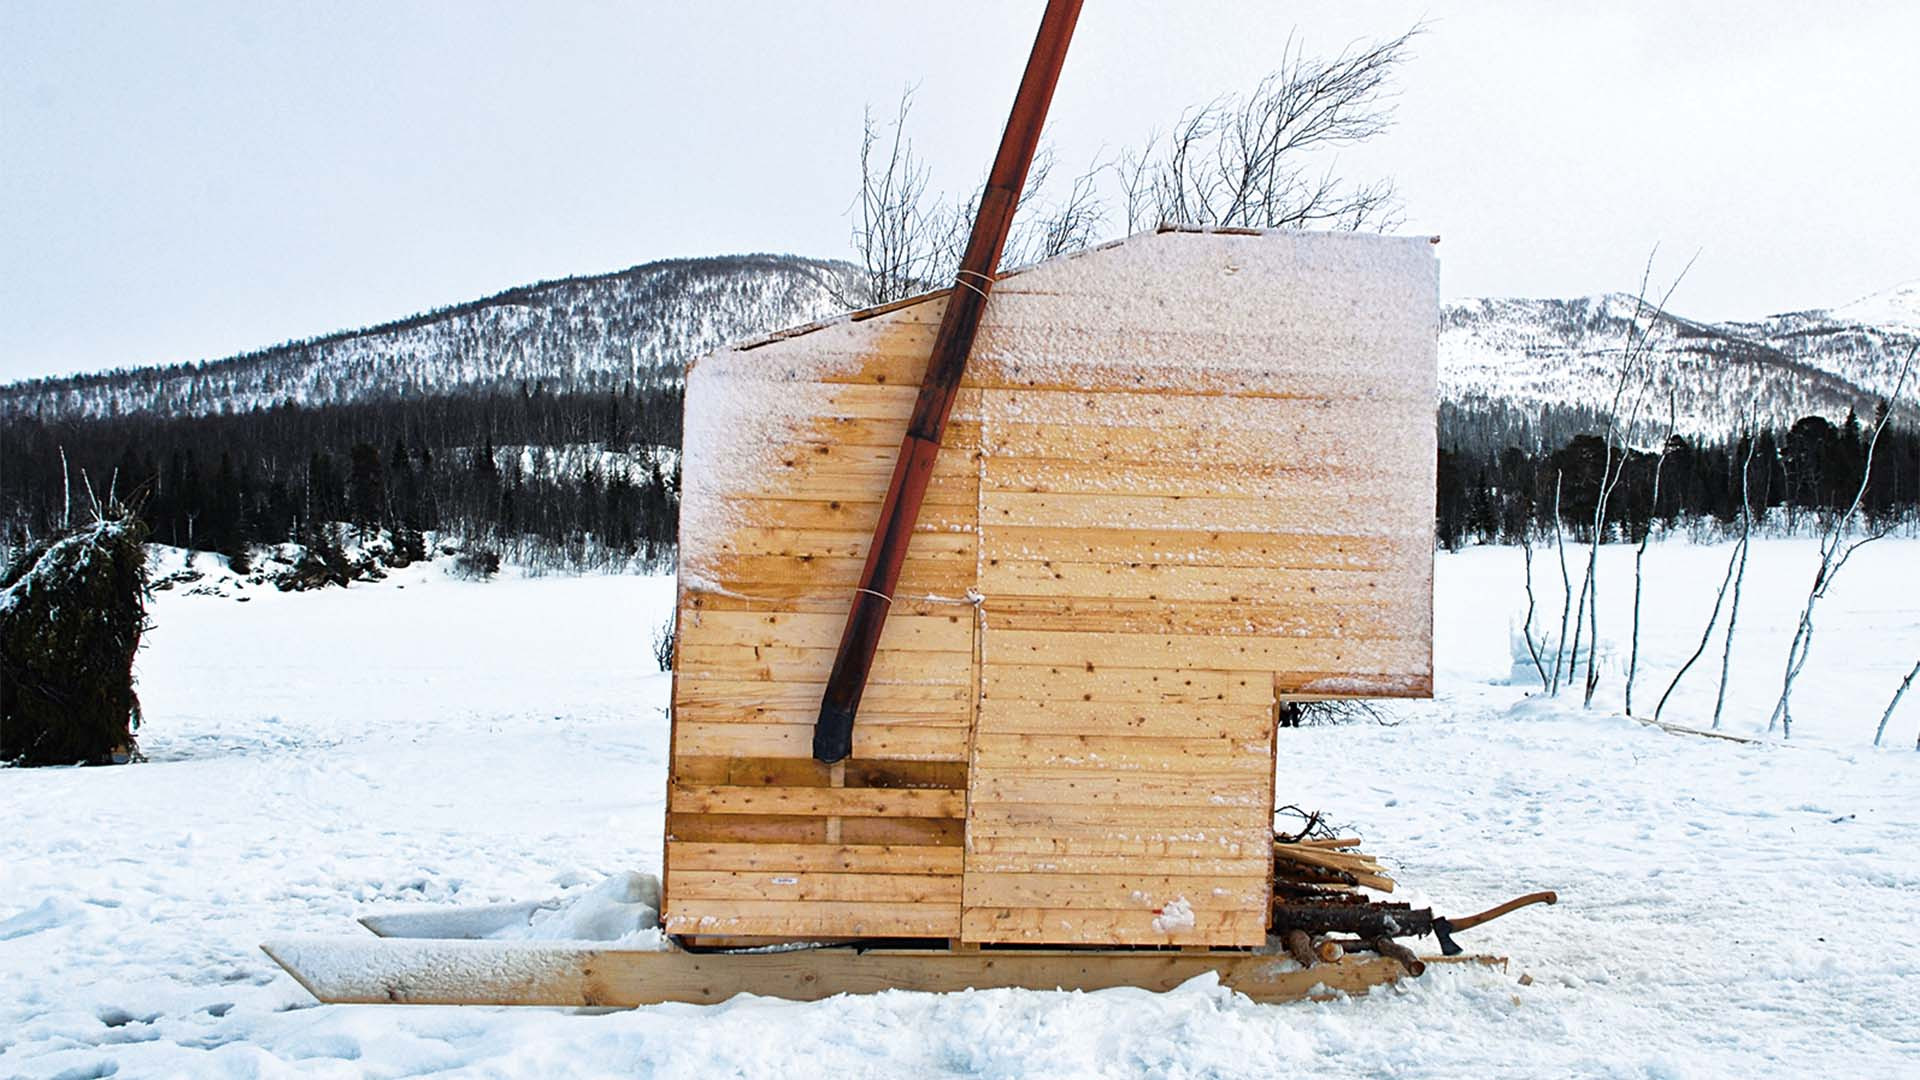 Noma Sauna on skis, Norway – Mobitecture